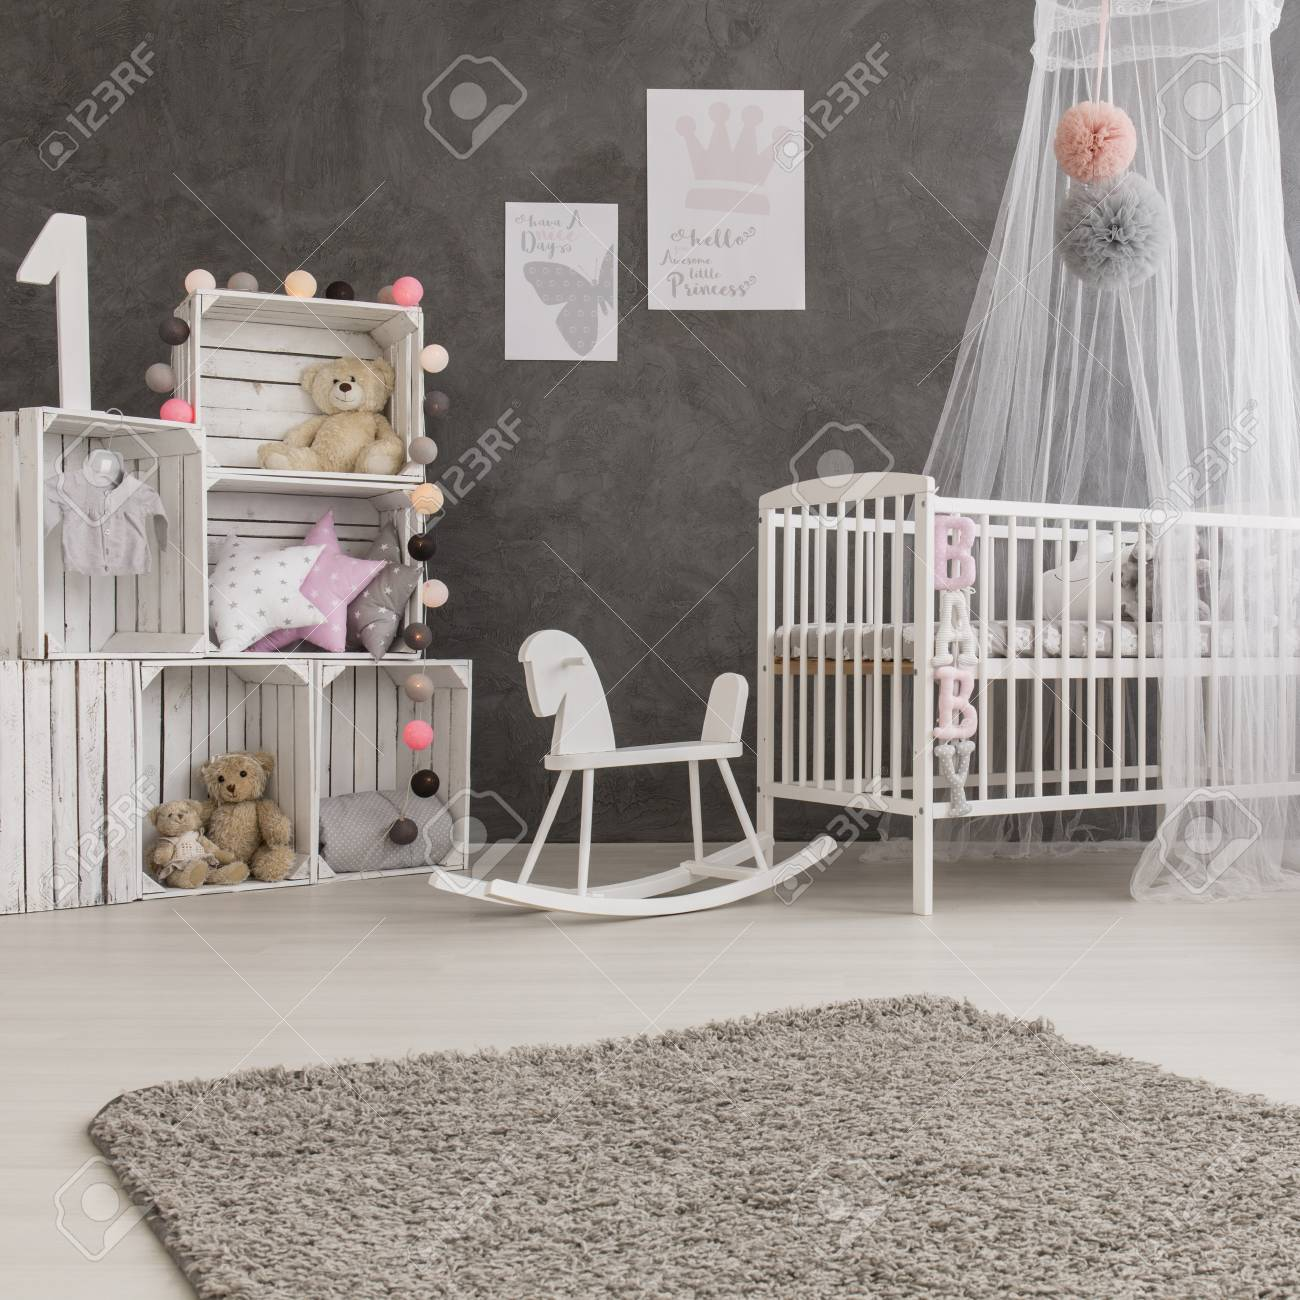 Himmelbett Baby Stock Photo